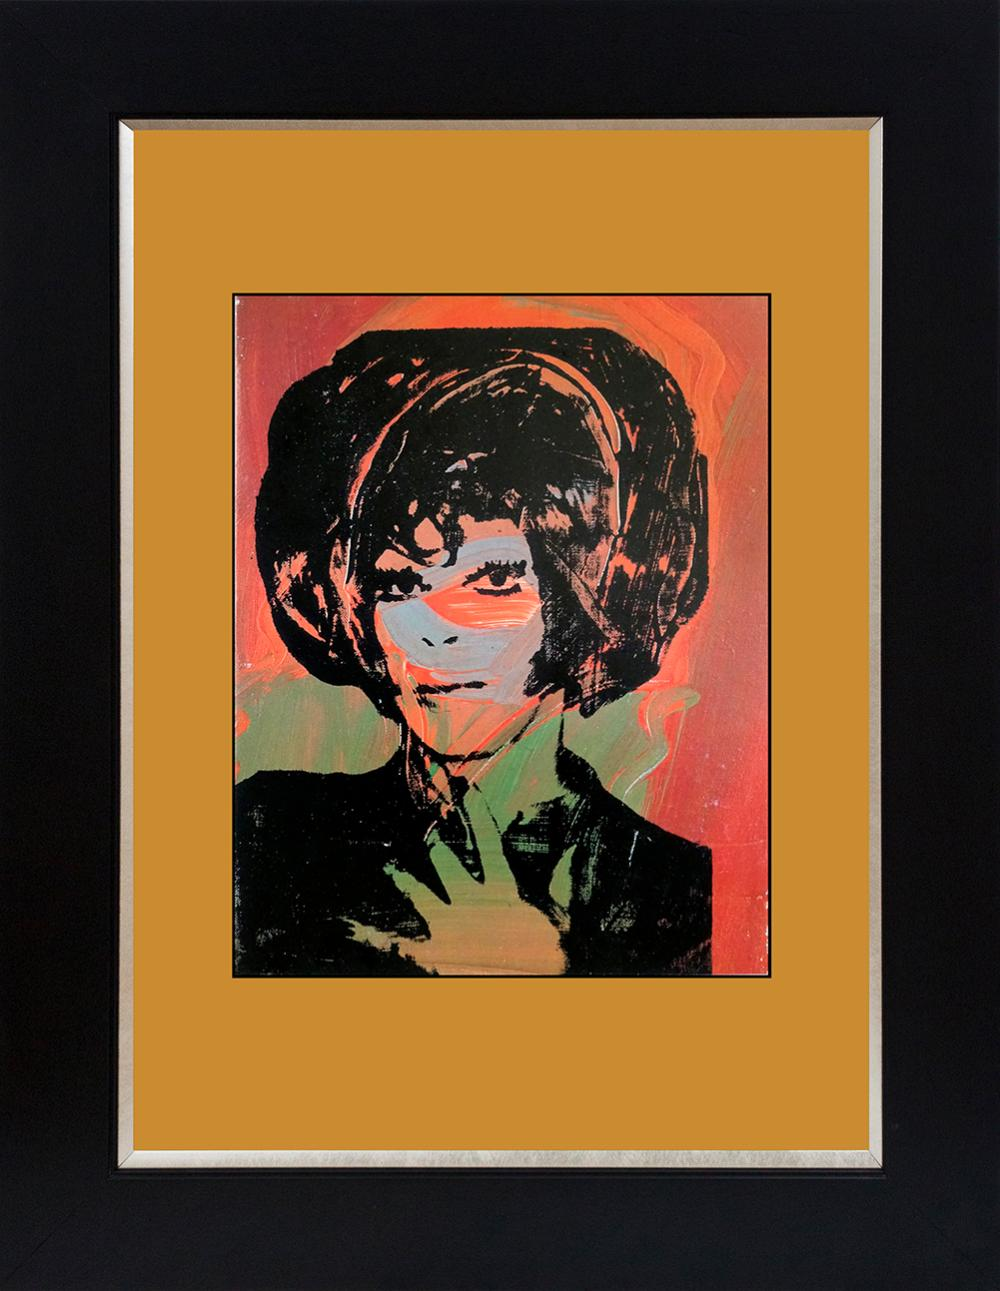 Lot 3169: Andy Warhol Lithograph from 1979